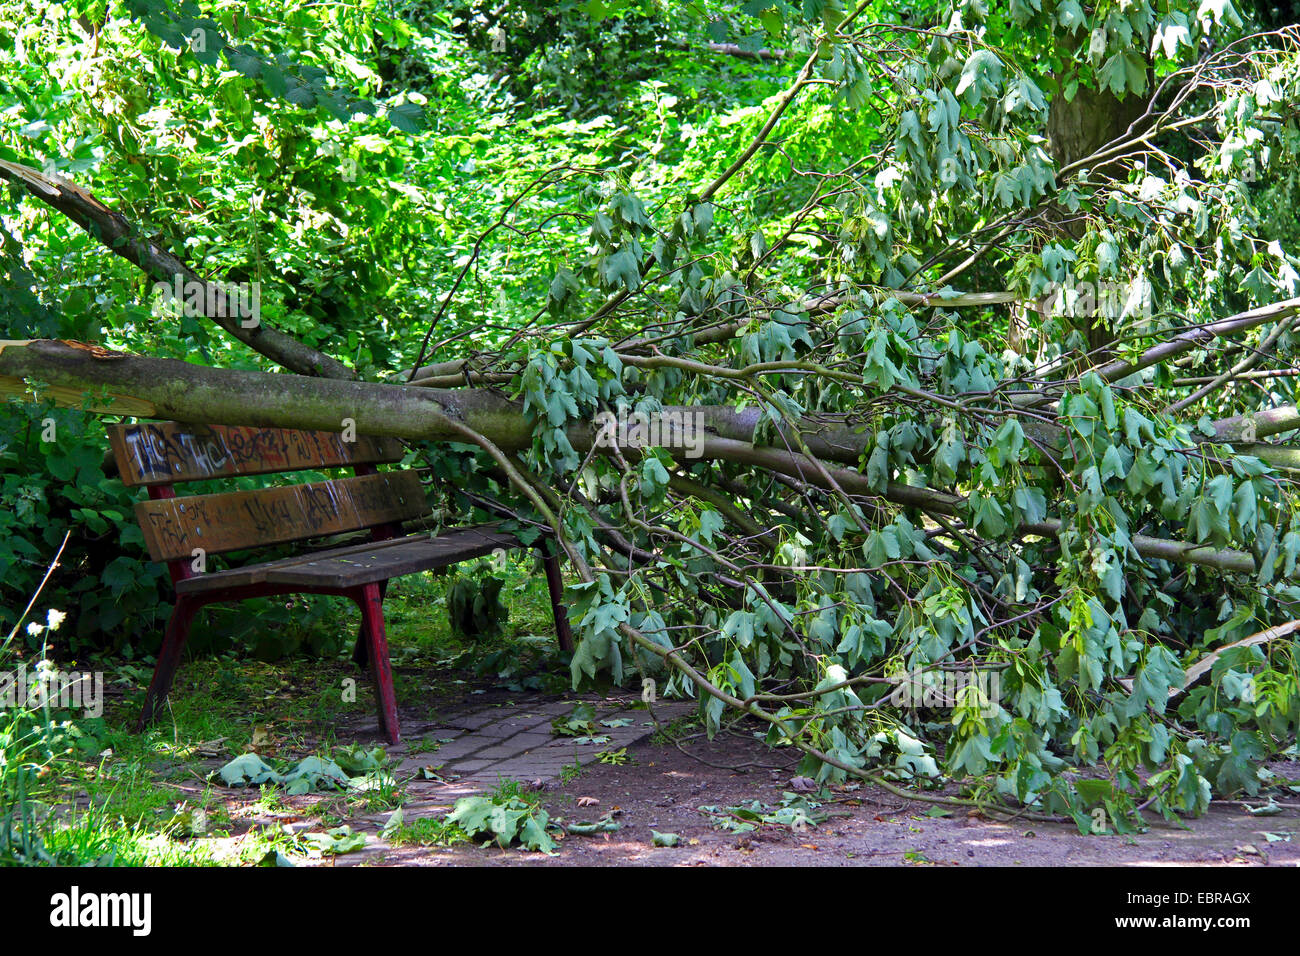 fallen trunk on a park bench, storm front Ela at 2014-06-09, Germany, North Rhine-Westphalia, Ruhr Area, Essen - Stock Image